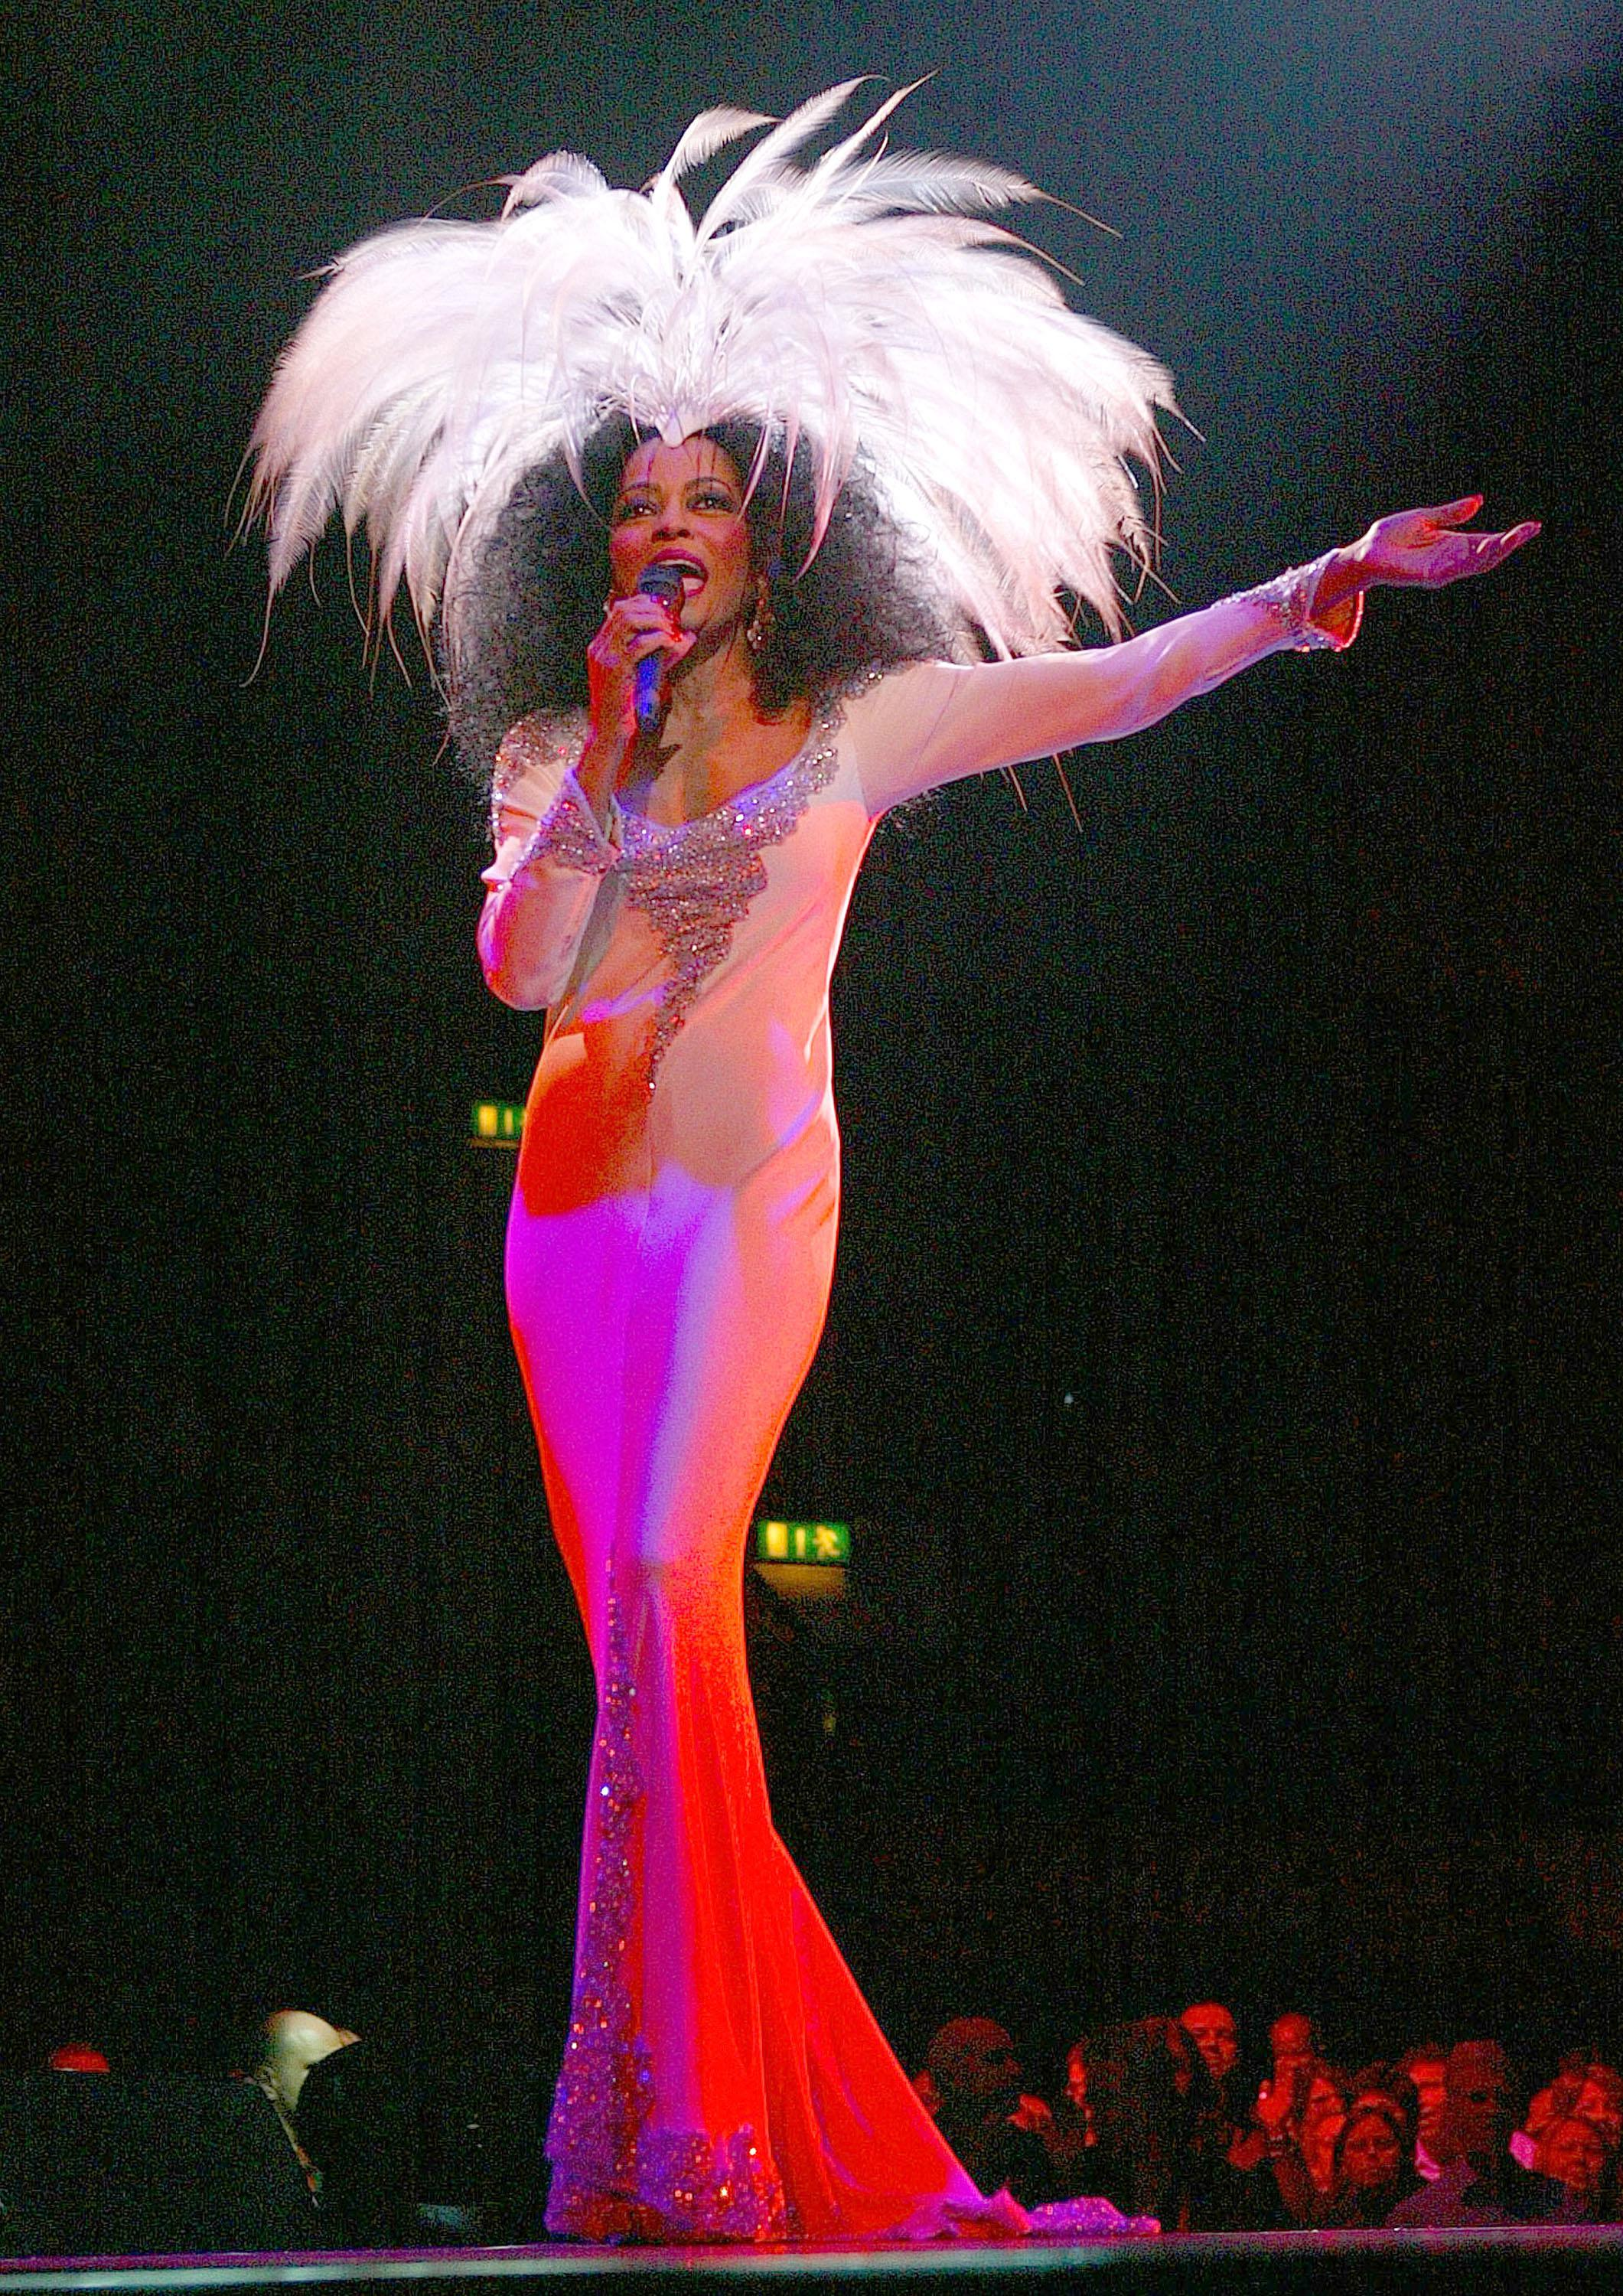 Diana Ross in Concert - March 18, 2004 - London